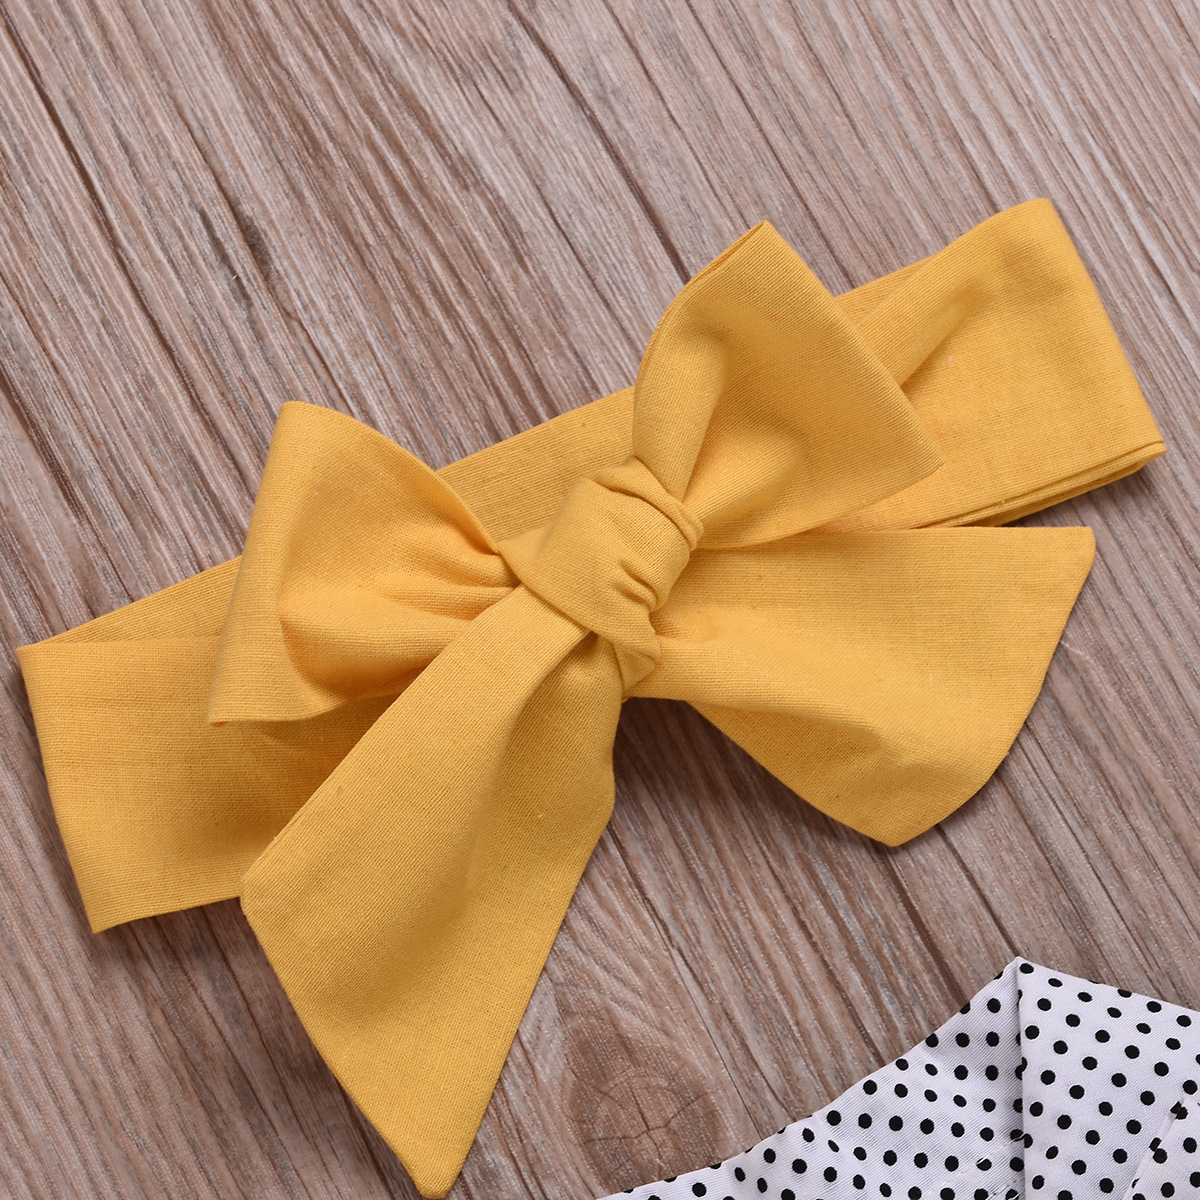 HTB1khA3d2WG3KVjSZPcq6zkbXXaB - Humor Bear Baby Girl Clothes Hot Summer Children's Girls' Clothing Sets Kids Bay clothes Toddler Chiffon bowknot coat+Pants 1-4Y